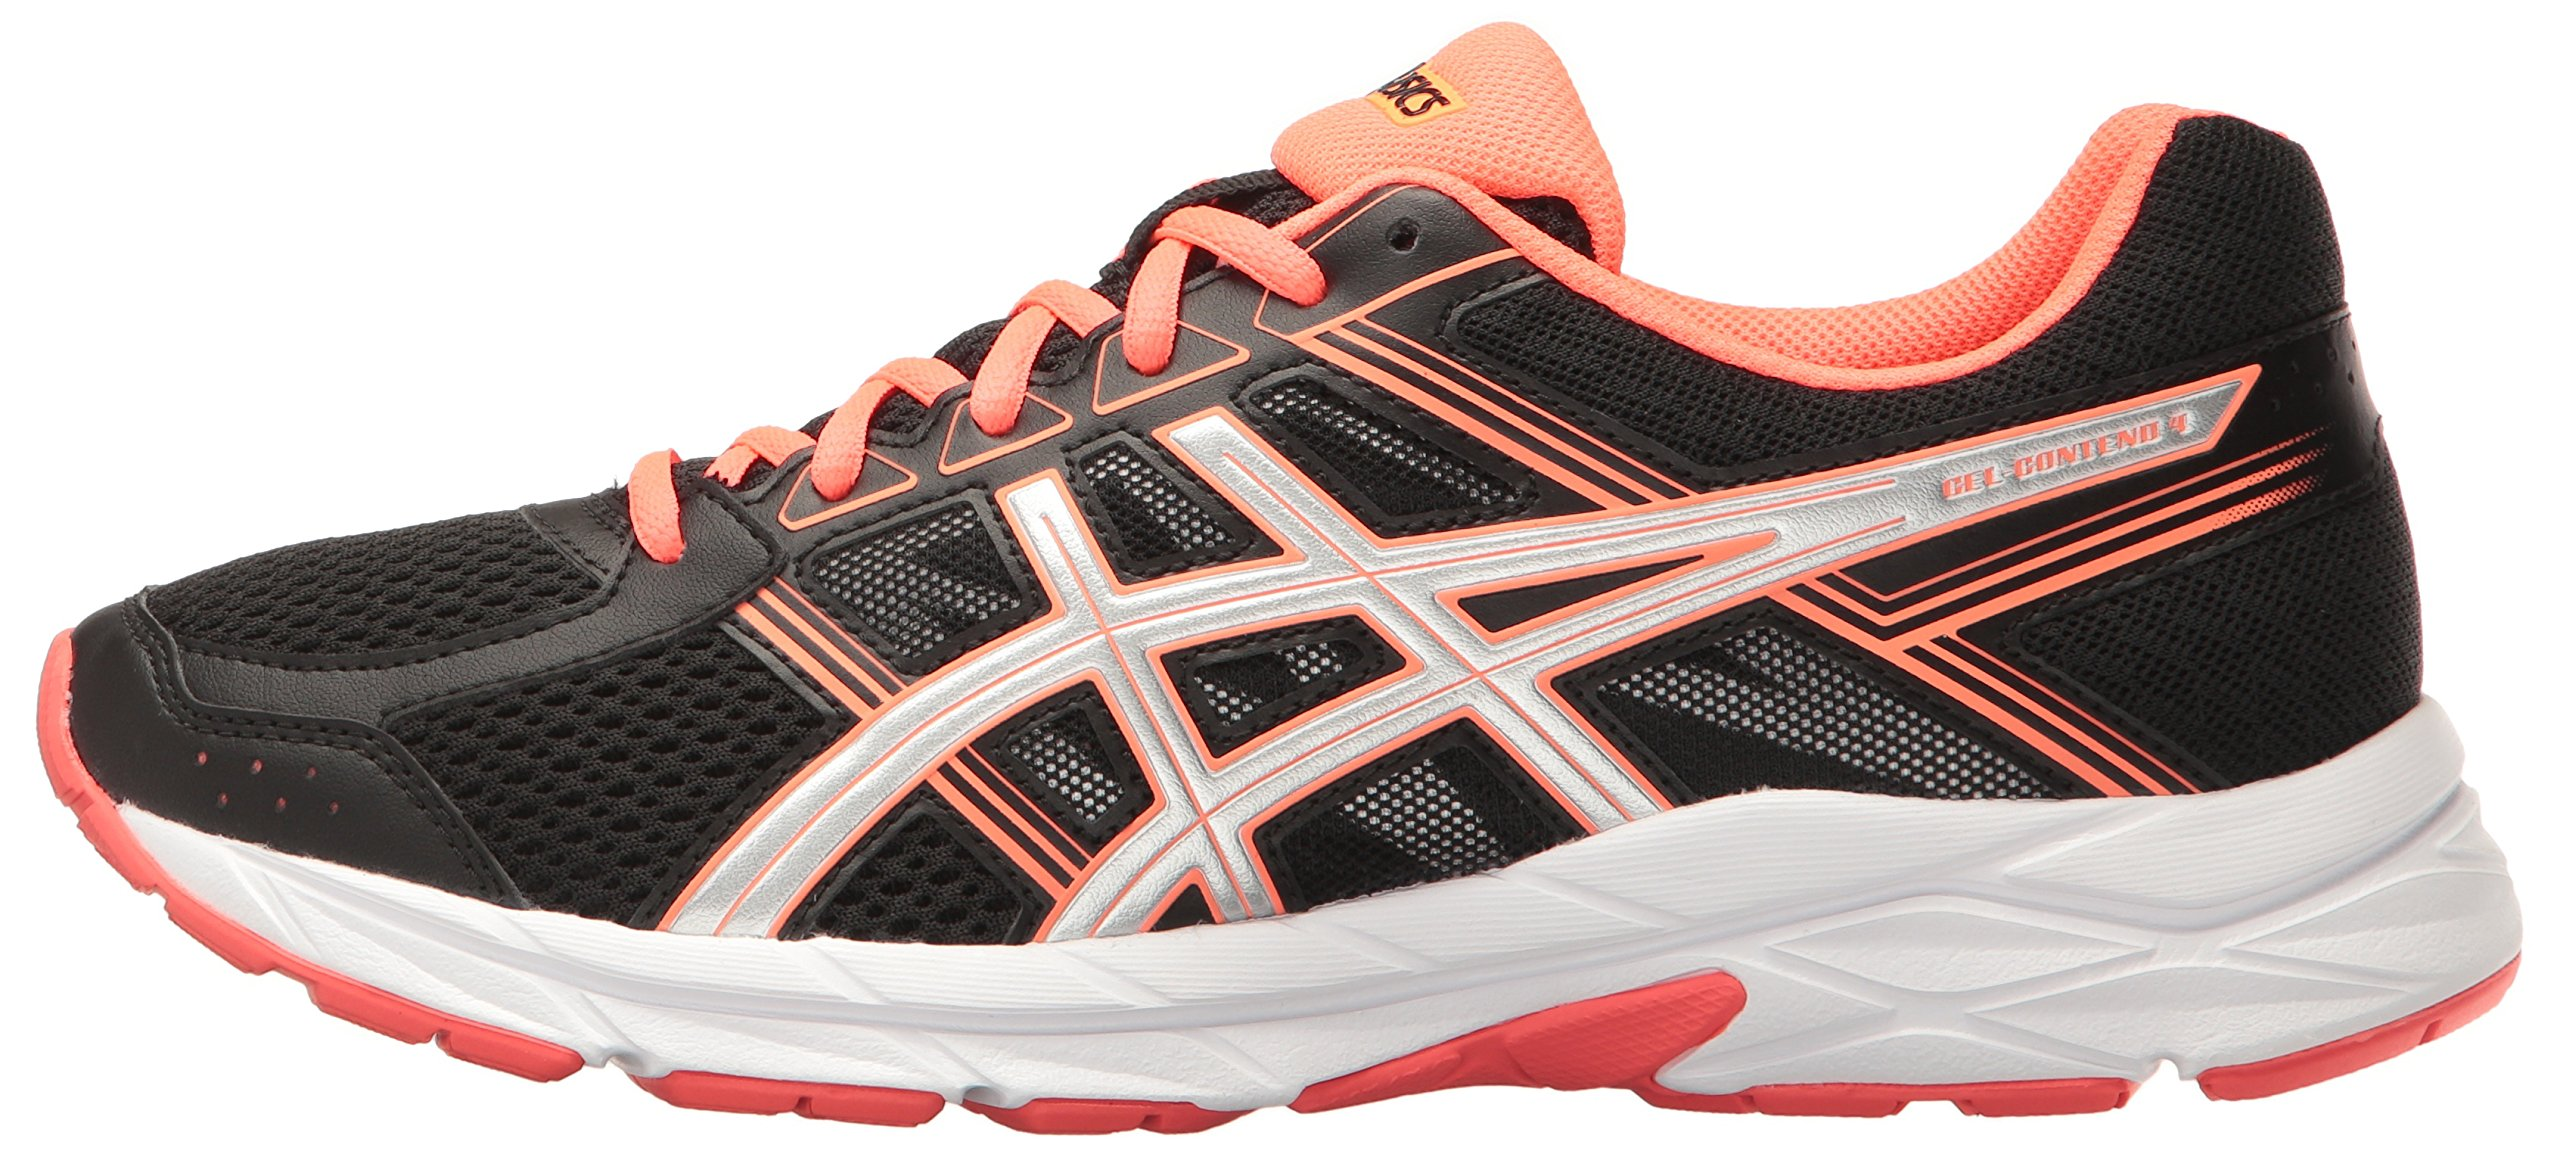 ASICS Women's Gel-Contend 4 Running Shoe, Black/Silver/Flash Coral, 5 M US by ASICS (Image #5)